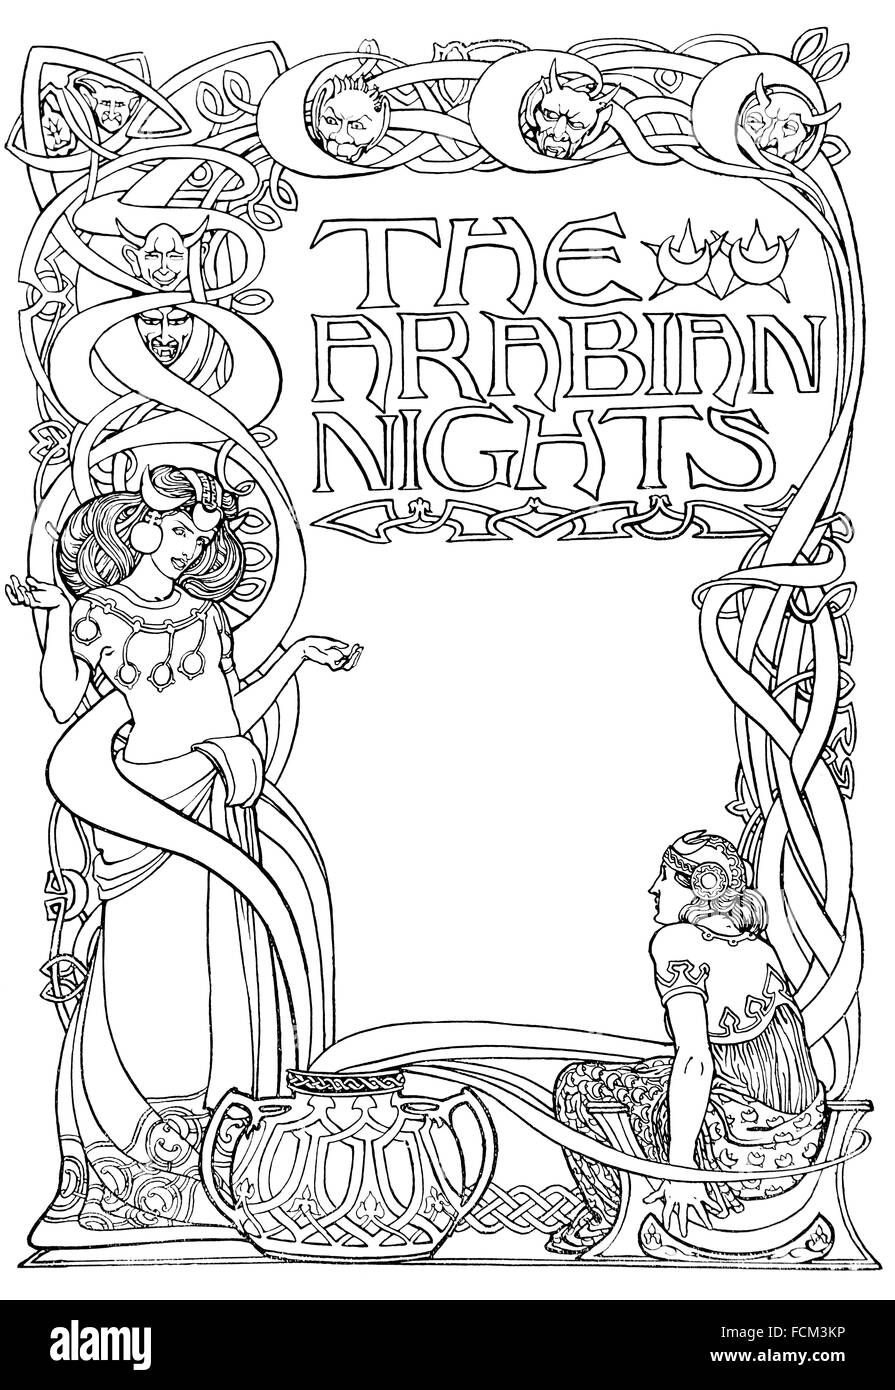 the arabian nights design for a title page by enid u jackson of stock photo the arabian nights design for a title page by enid u jackson of birmingham line illustration from 1900 studio magazine